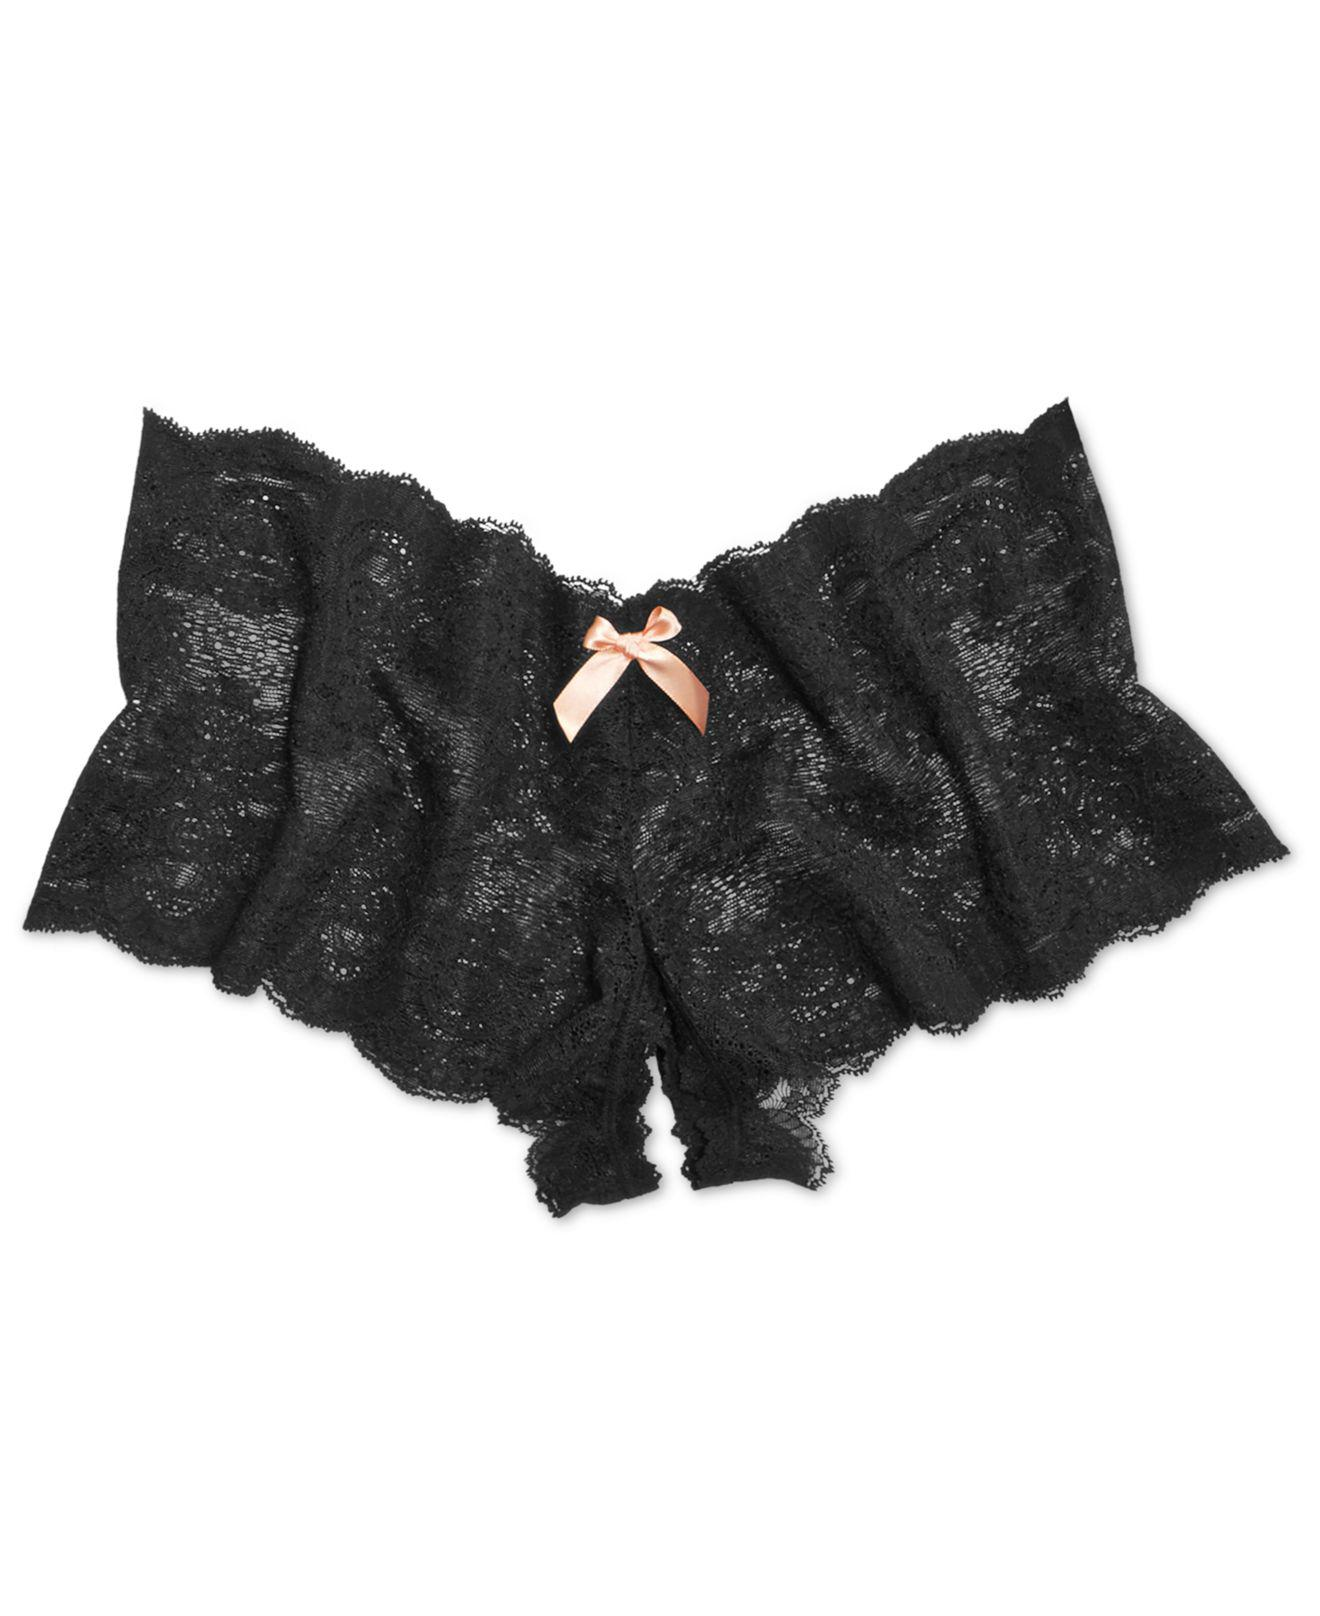 1766283e1 Hanky Panky After Midnight Peek-a-boo Crotchless Brief 972701 in ...